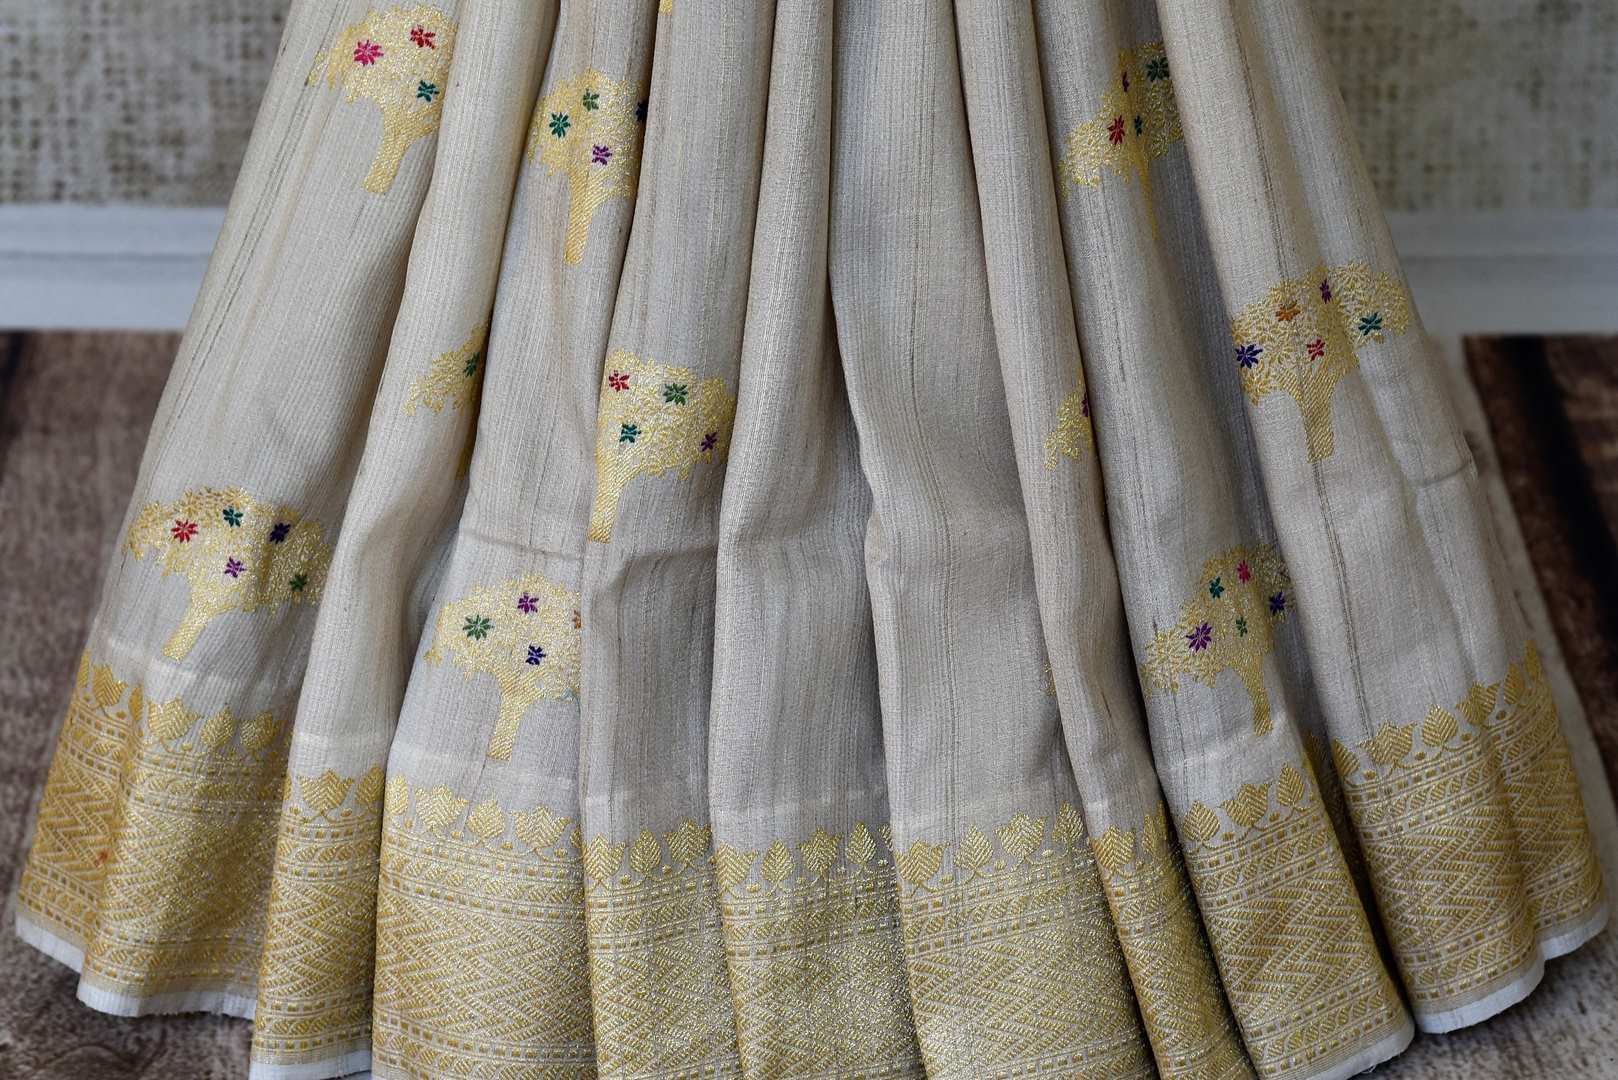 Buy off-white khaddi silk saree with zari tree buta online in USA. Adorn your style with a range of exquisite handwoven sarees from Pure Elegance Indian clothing store in USA. We have an exquisite range of Indian designer sarees, silk saris, Banarasi saris and many other varieties also available at our online store.-pleats